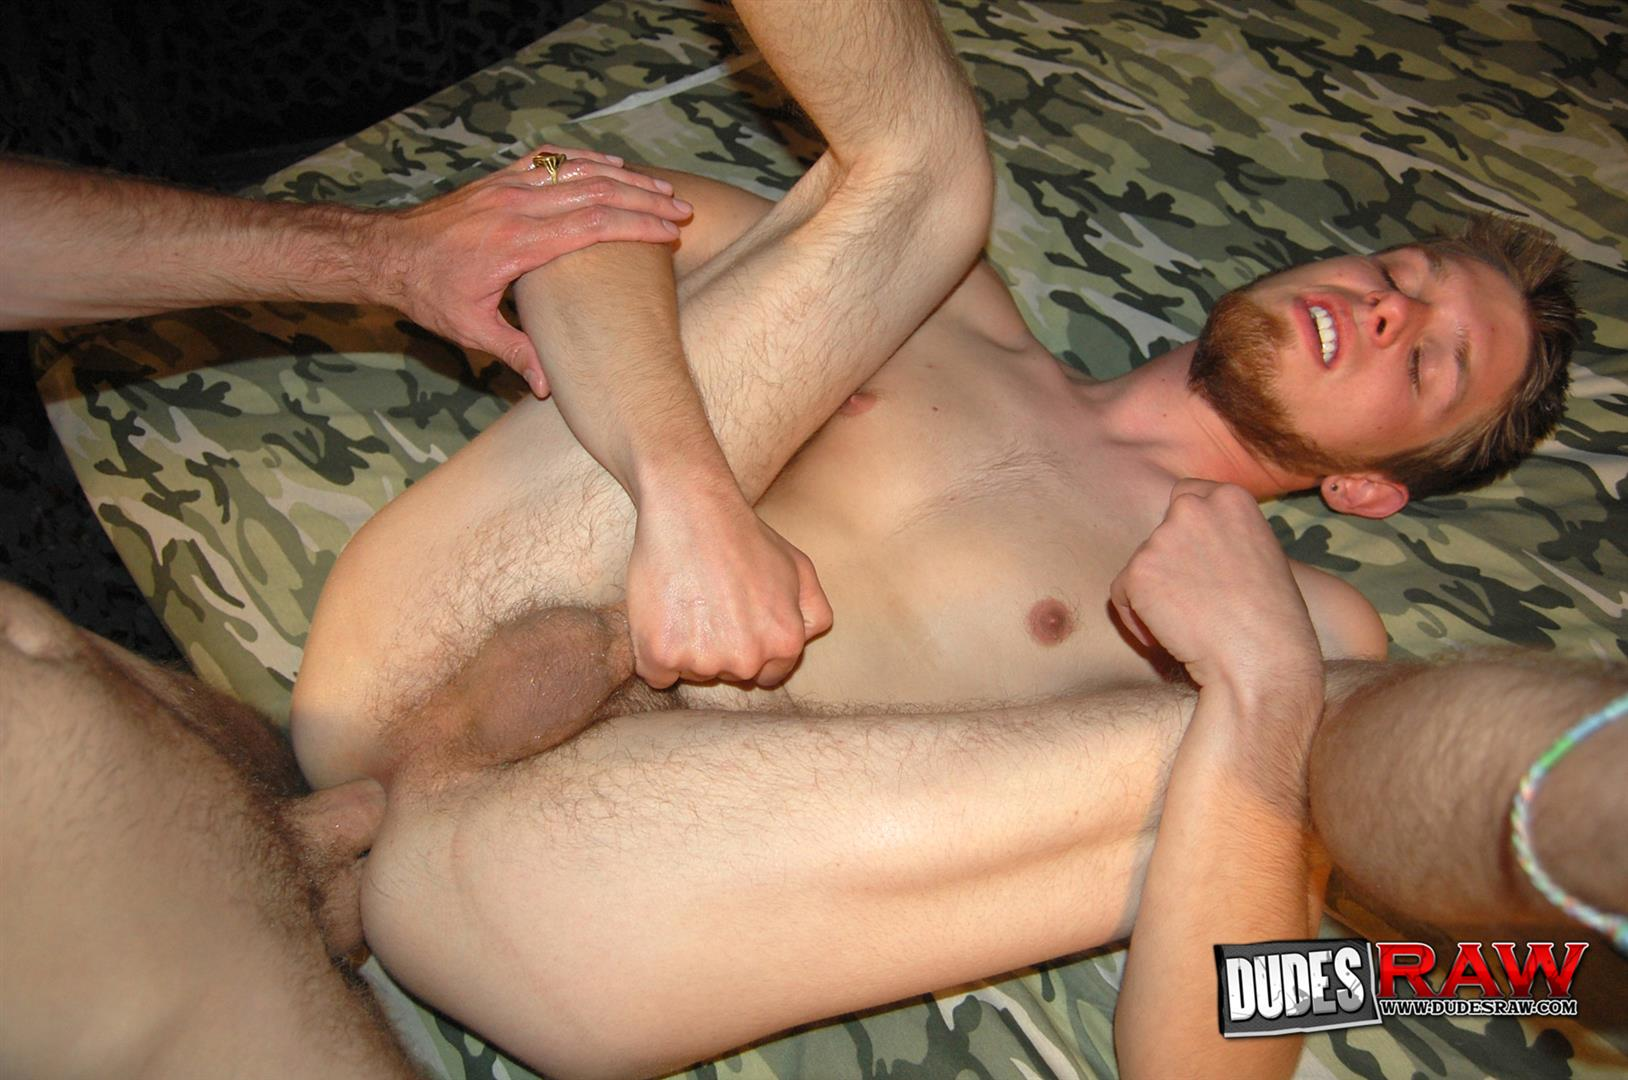 Dudes-Raw-Jacques-Satori-and-Zeke-Stardust-Army-Guys-Barebacking-Amateur-Gay-Porn-21 Army Guys Discover Gay Sex and Bareback Fuck Each Other